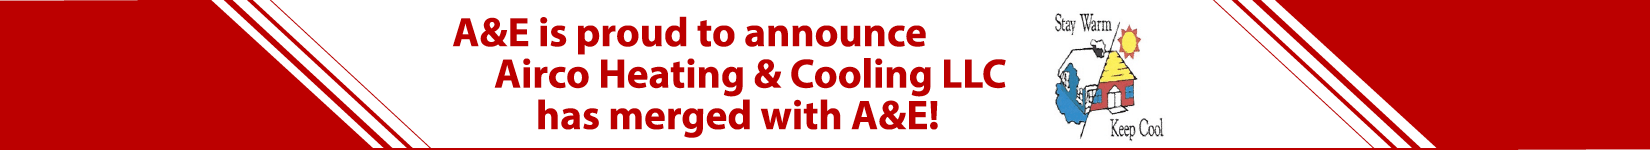 A&E is proud to announce Airco Heating and Cooling LLC has merged with A&E!